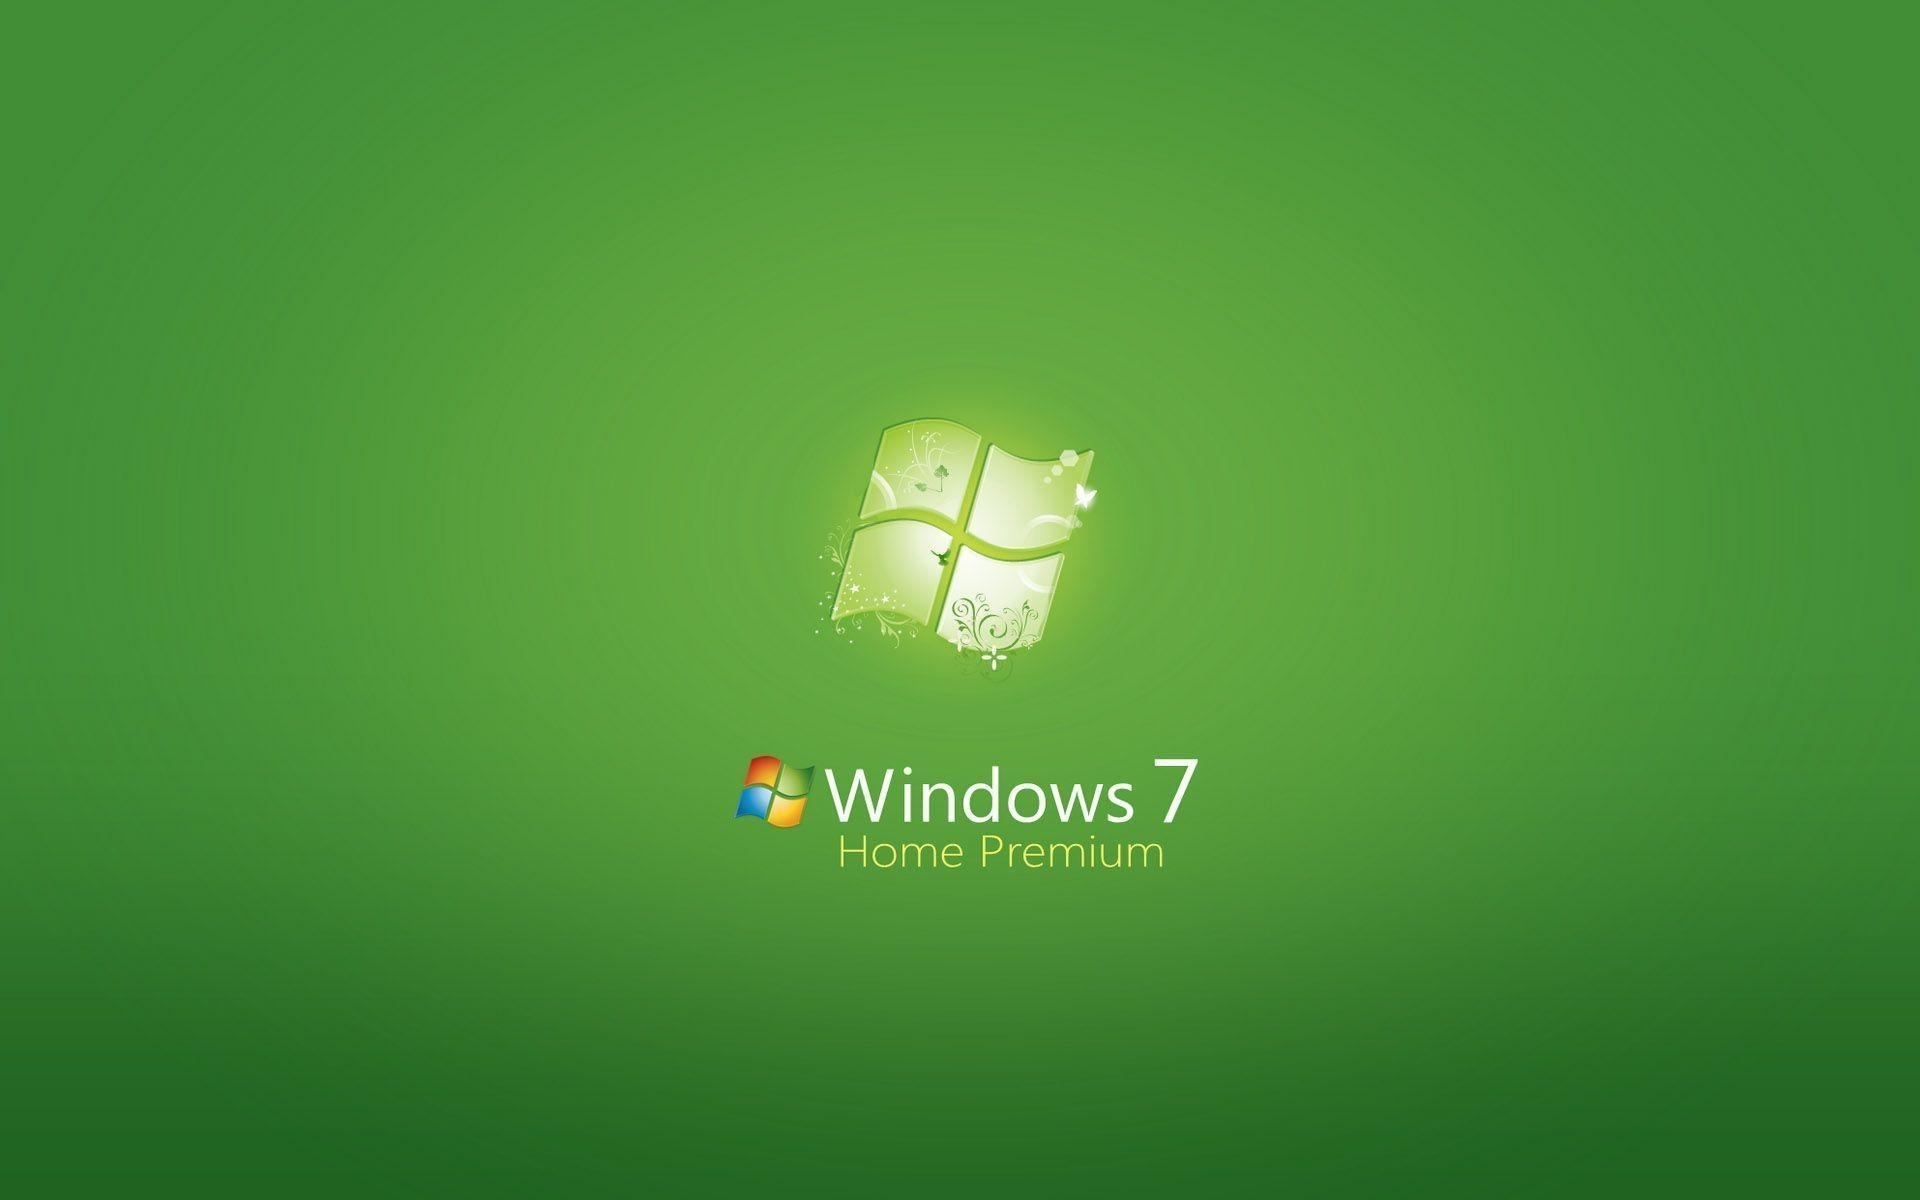 windows 7 home premium wallpapers - wallpaper cave